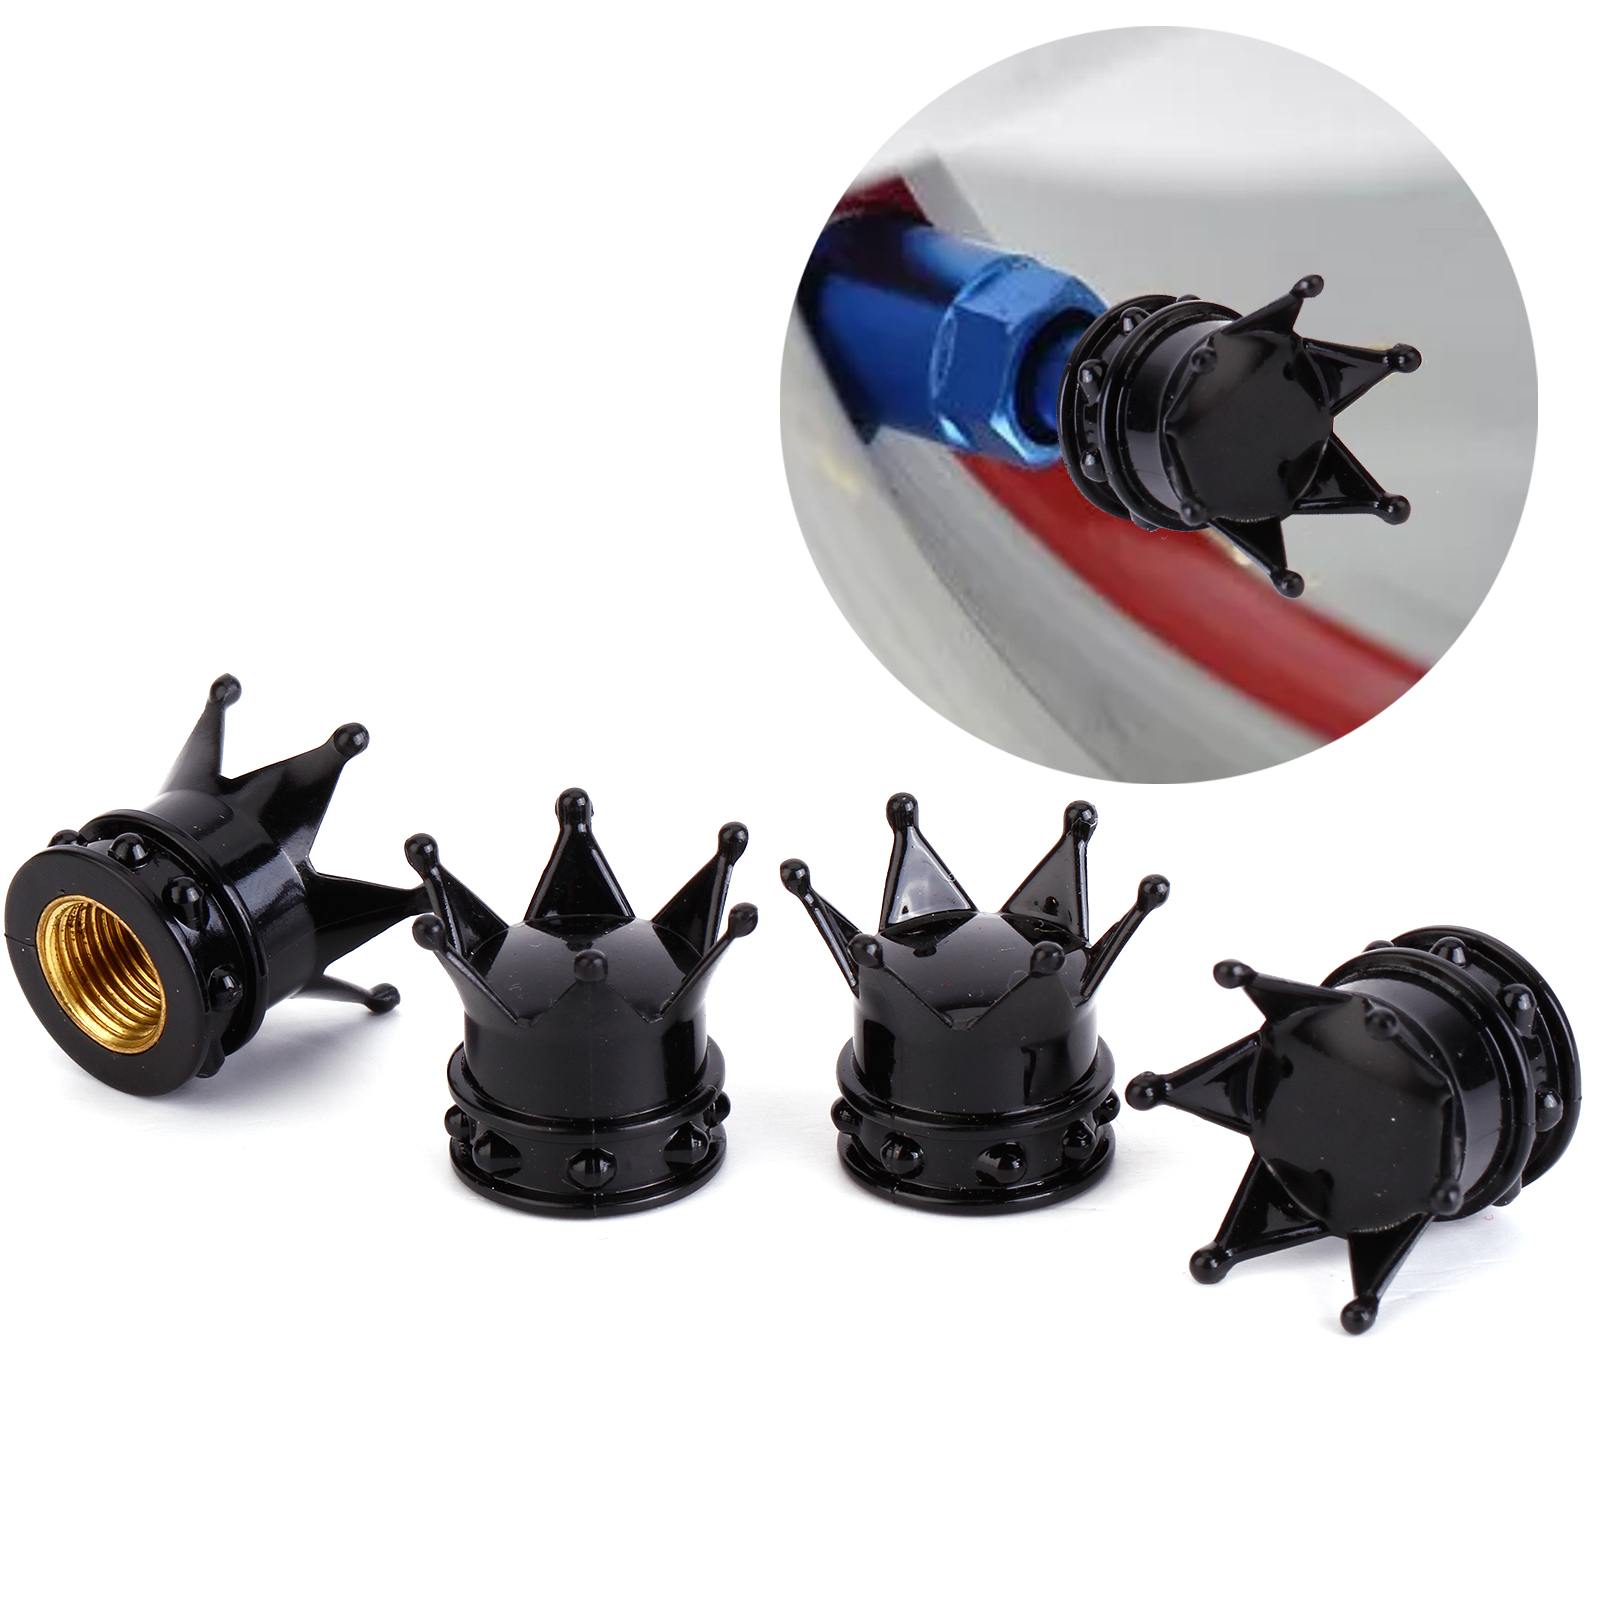 4 pcs bouchon valve d 39 air pneu forme couronne noir v lo moto voiture roue ebay. Black Bedroom Furniture Sets. Home Design Ideas